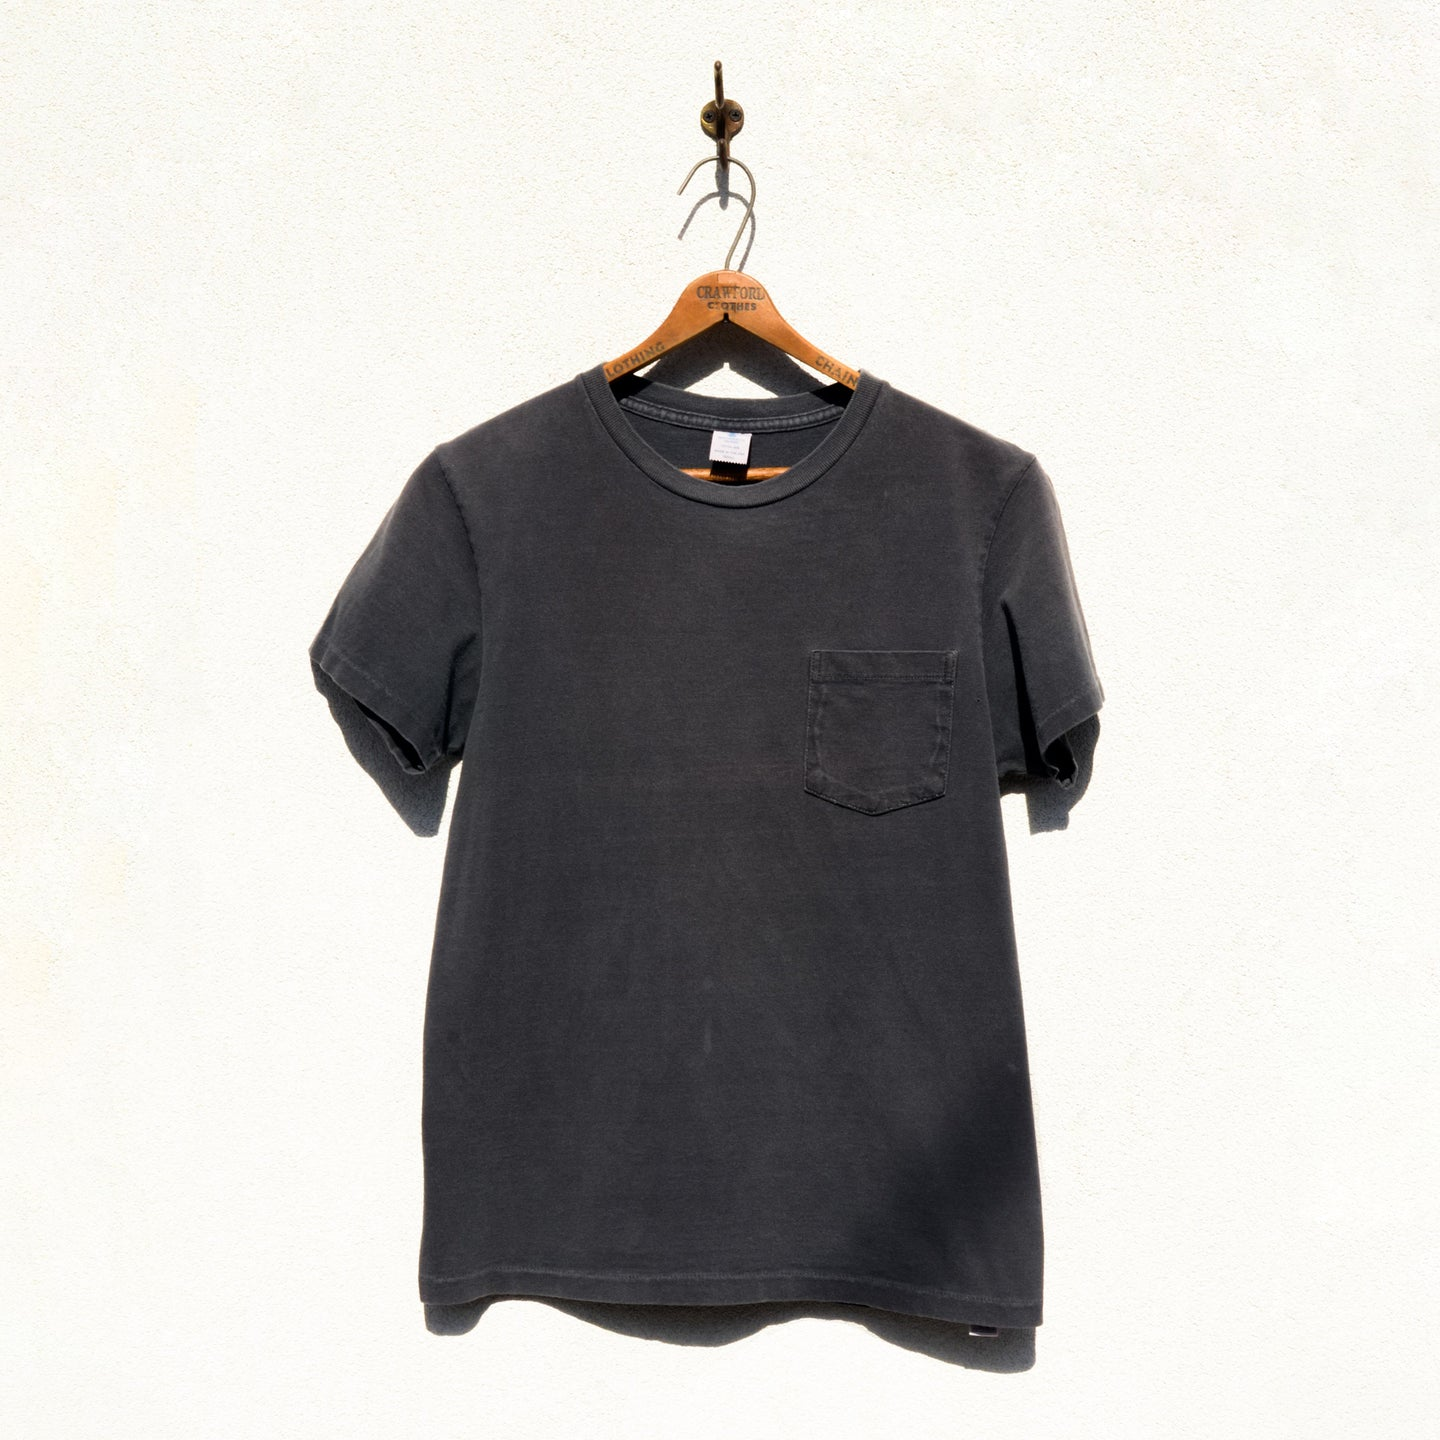 Unknown Brand - All Cotton Pocket T shirt